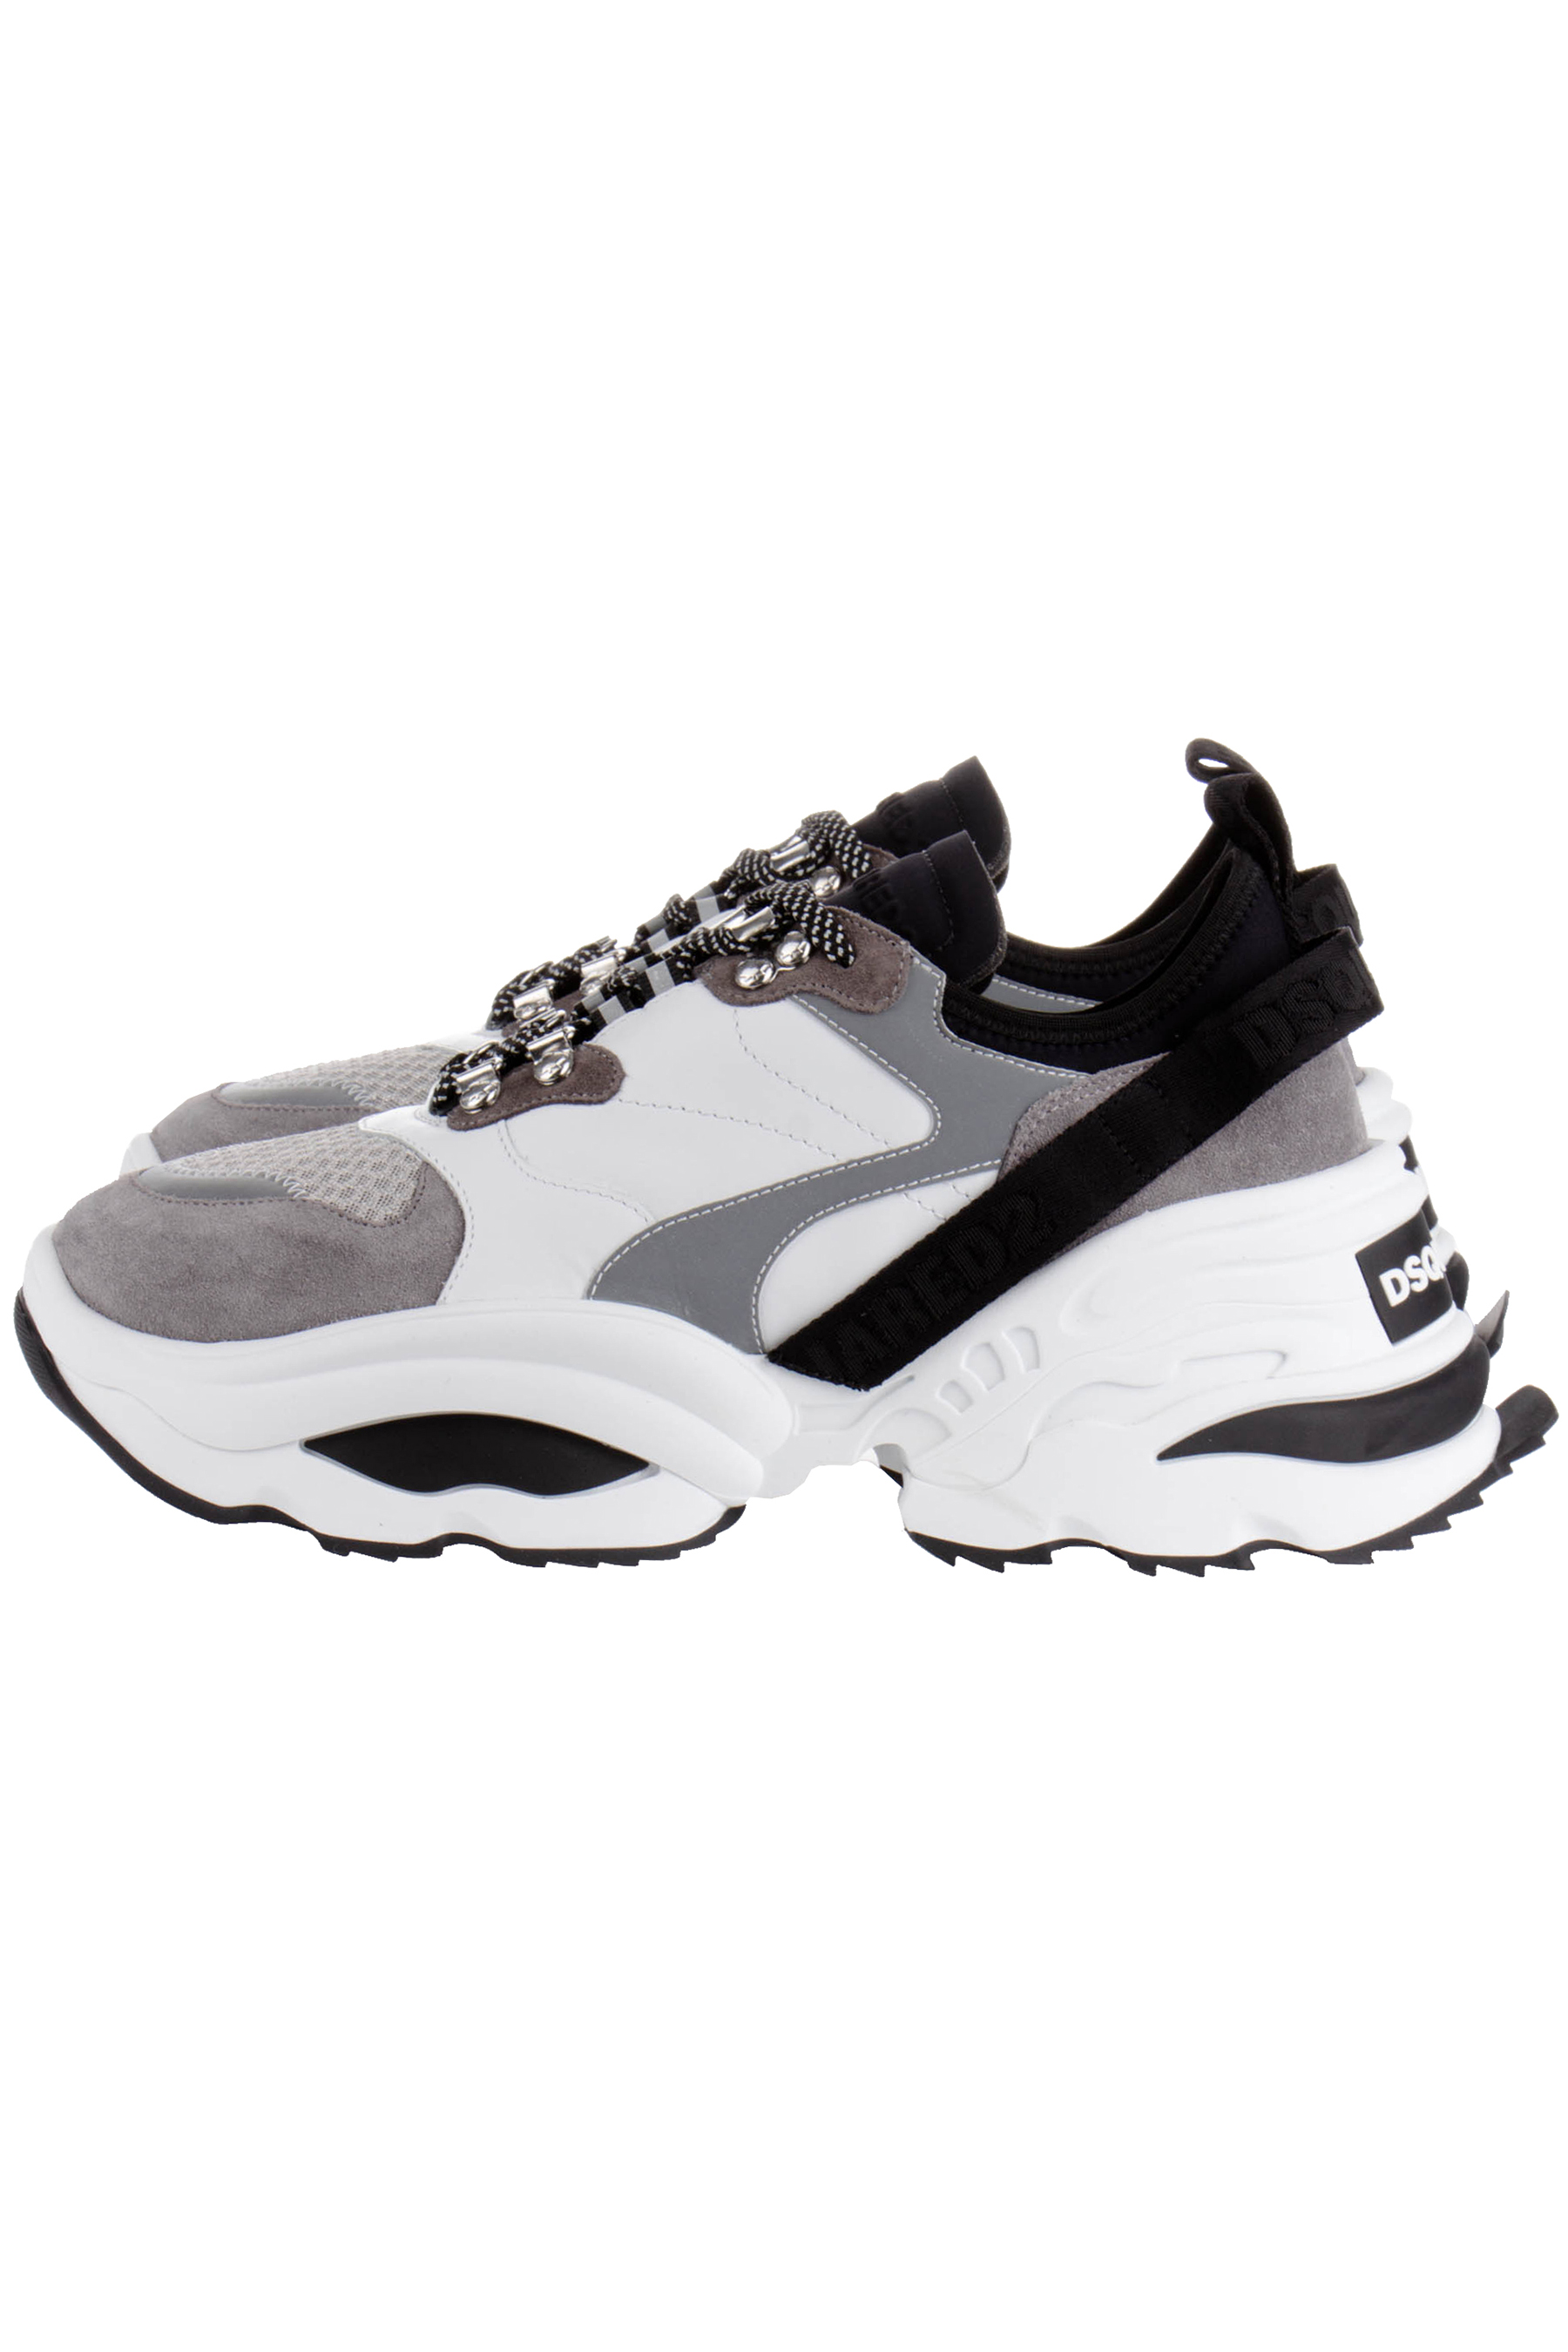 DSQUARED2 Sneakers The Giant K2